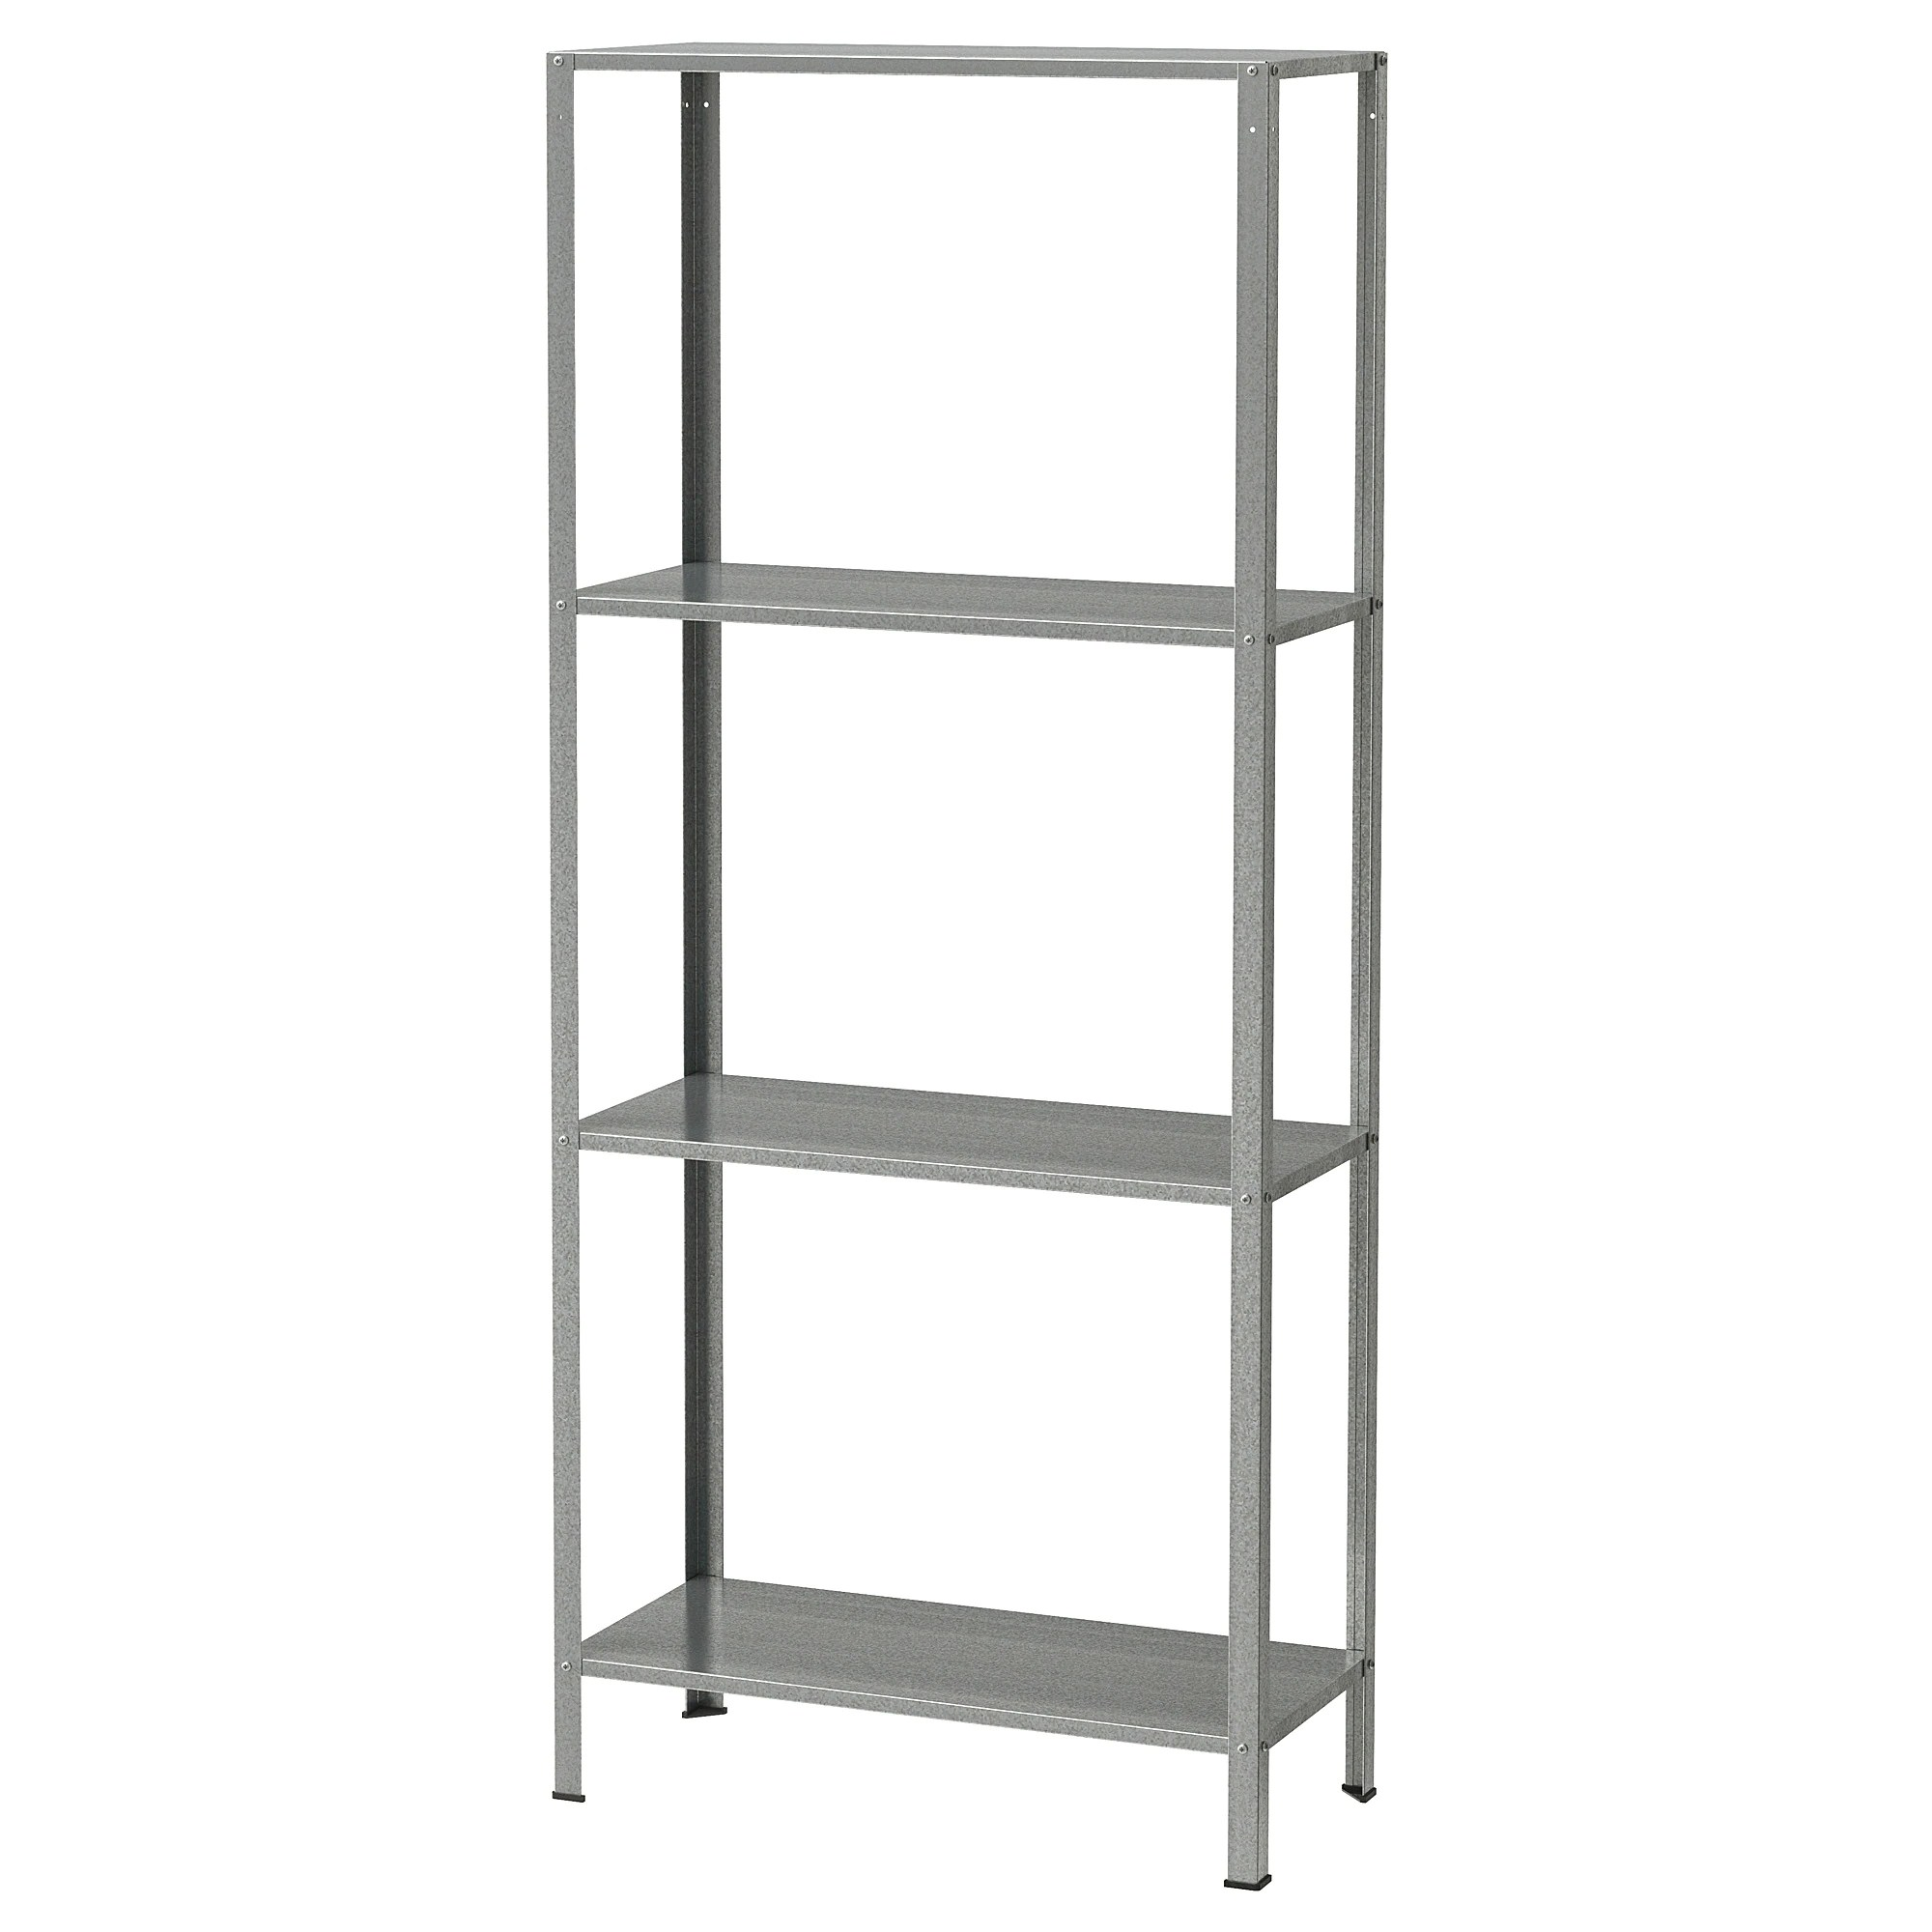 Ikea Vesken Hyllis Shelf Unit Indoor Outdoor Galvanized Ikea